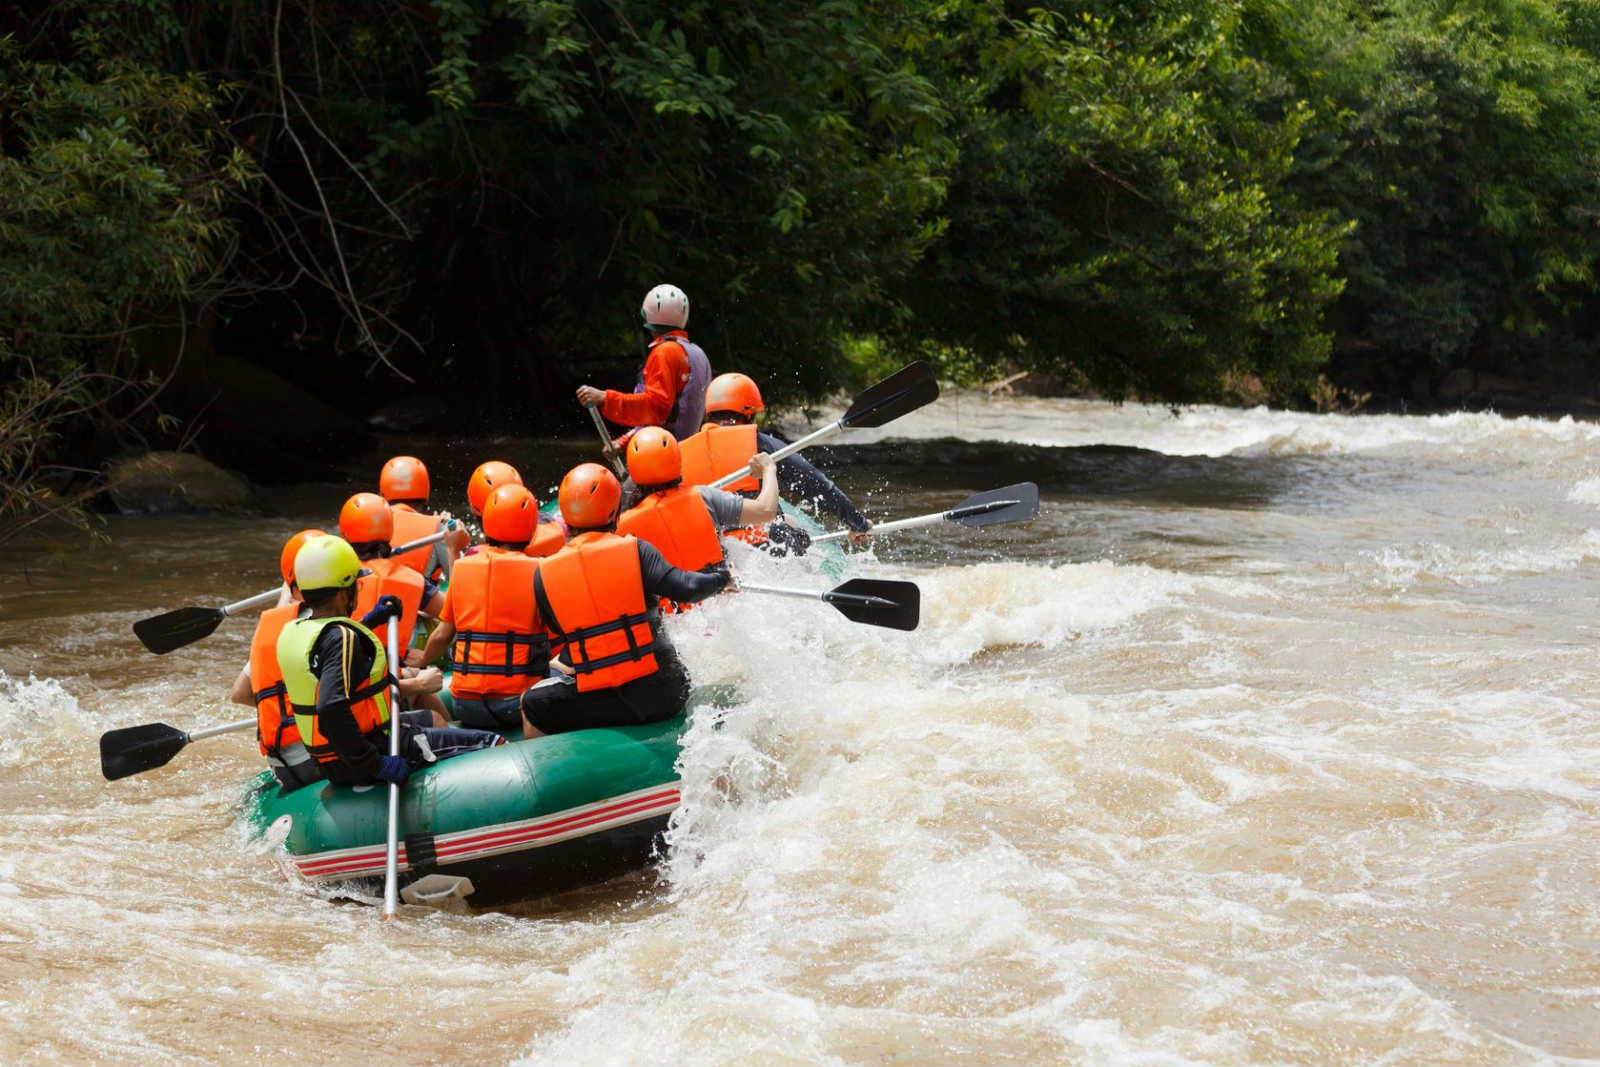 Kek river rafting festival - Things to Know about Thailand's Weather in September